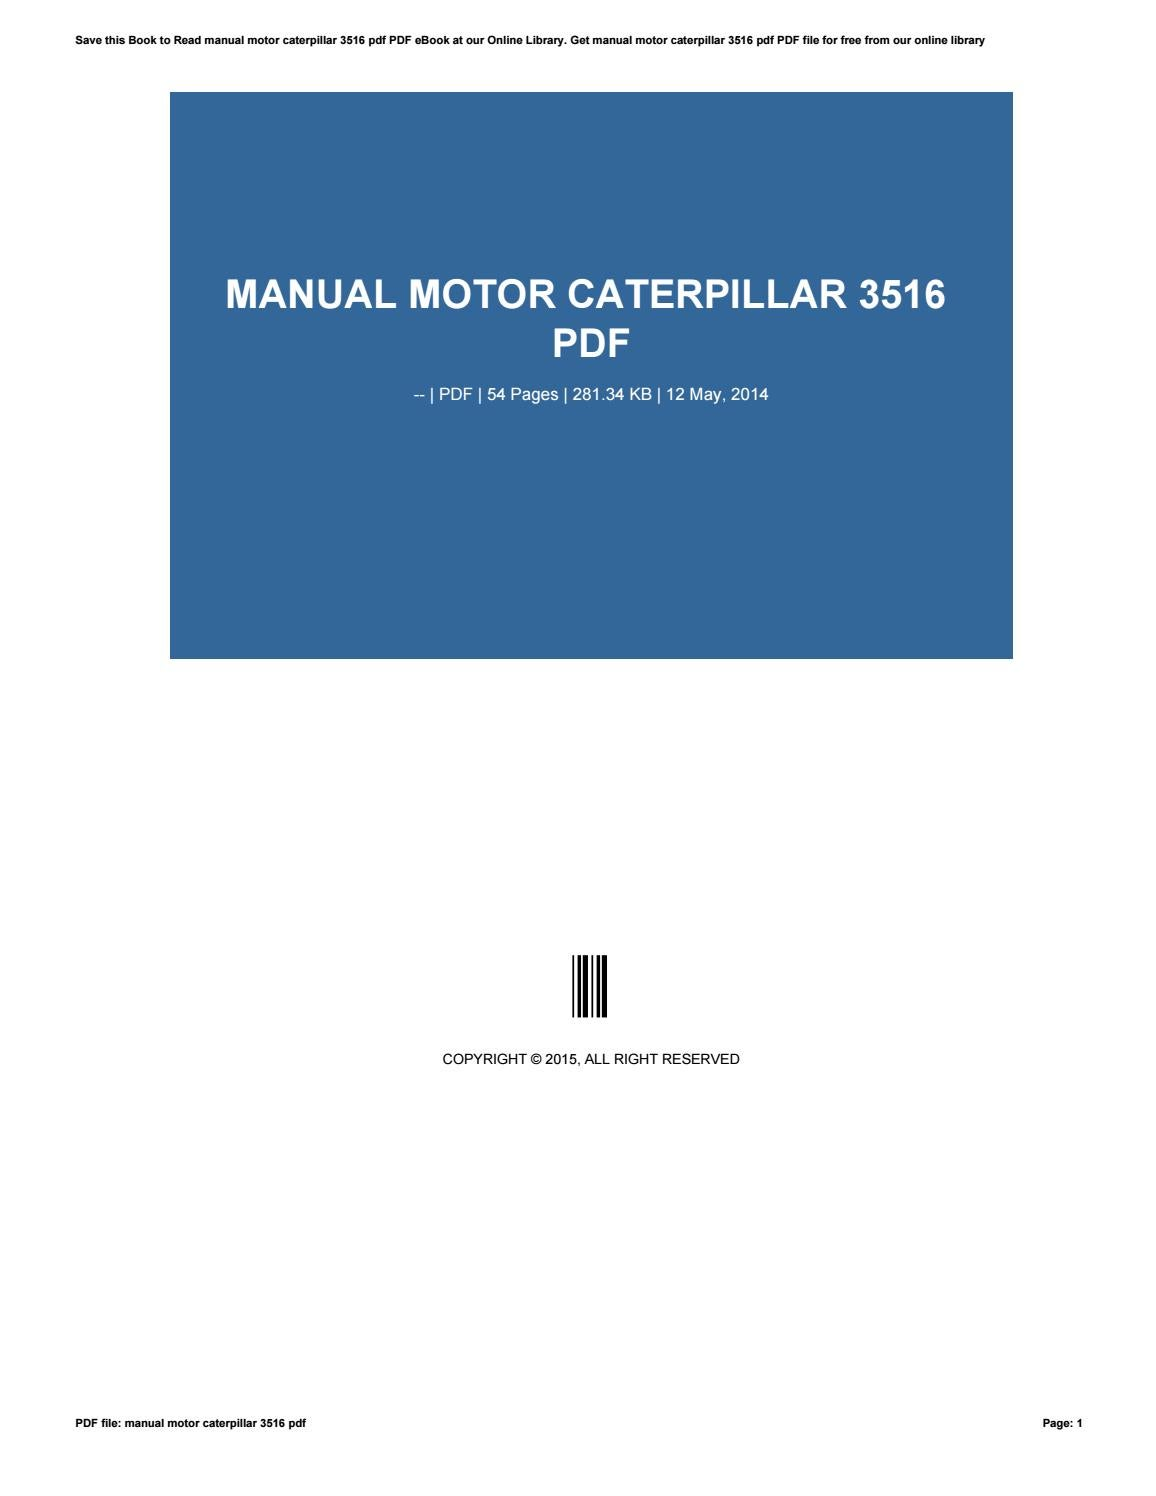 Caterpillar manual ebook array manual motor caterpillar 3516 pdf by reddit5 issuu rh issuu fandeluxe Gallery